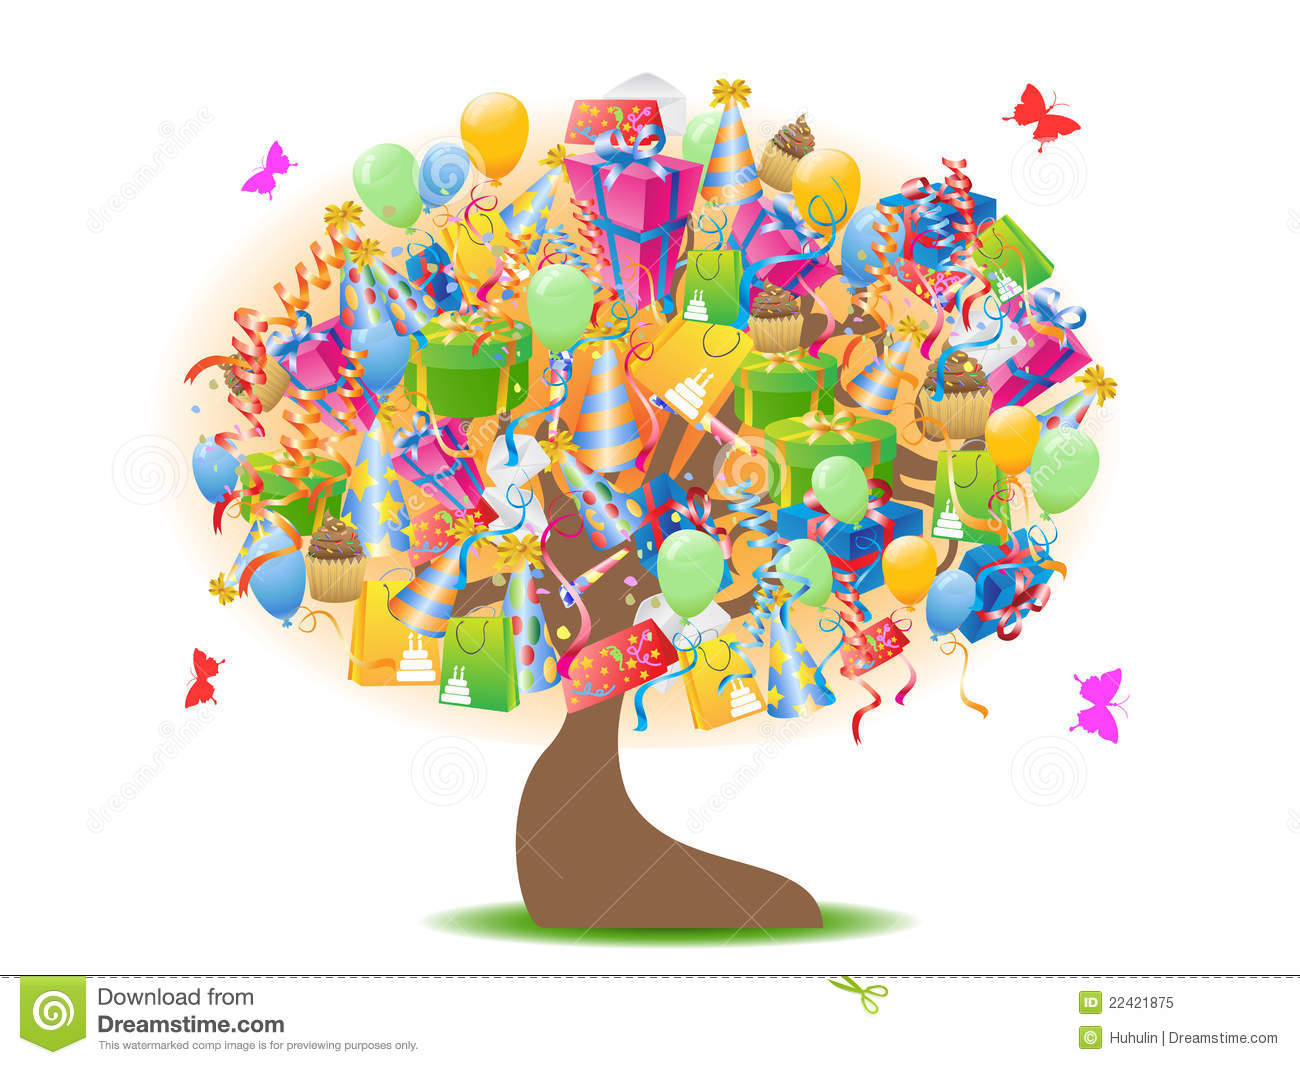 Carte Cadeau Wish Birthday Gifts Tree Royalty Free Stock Photo Image 22421875